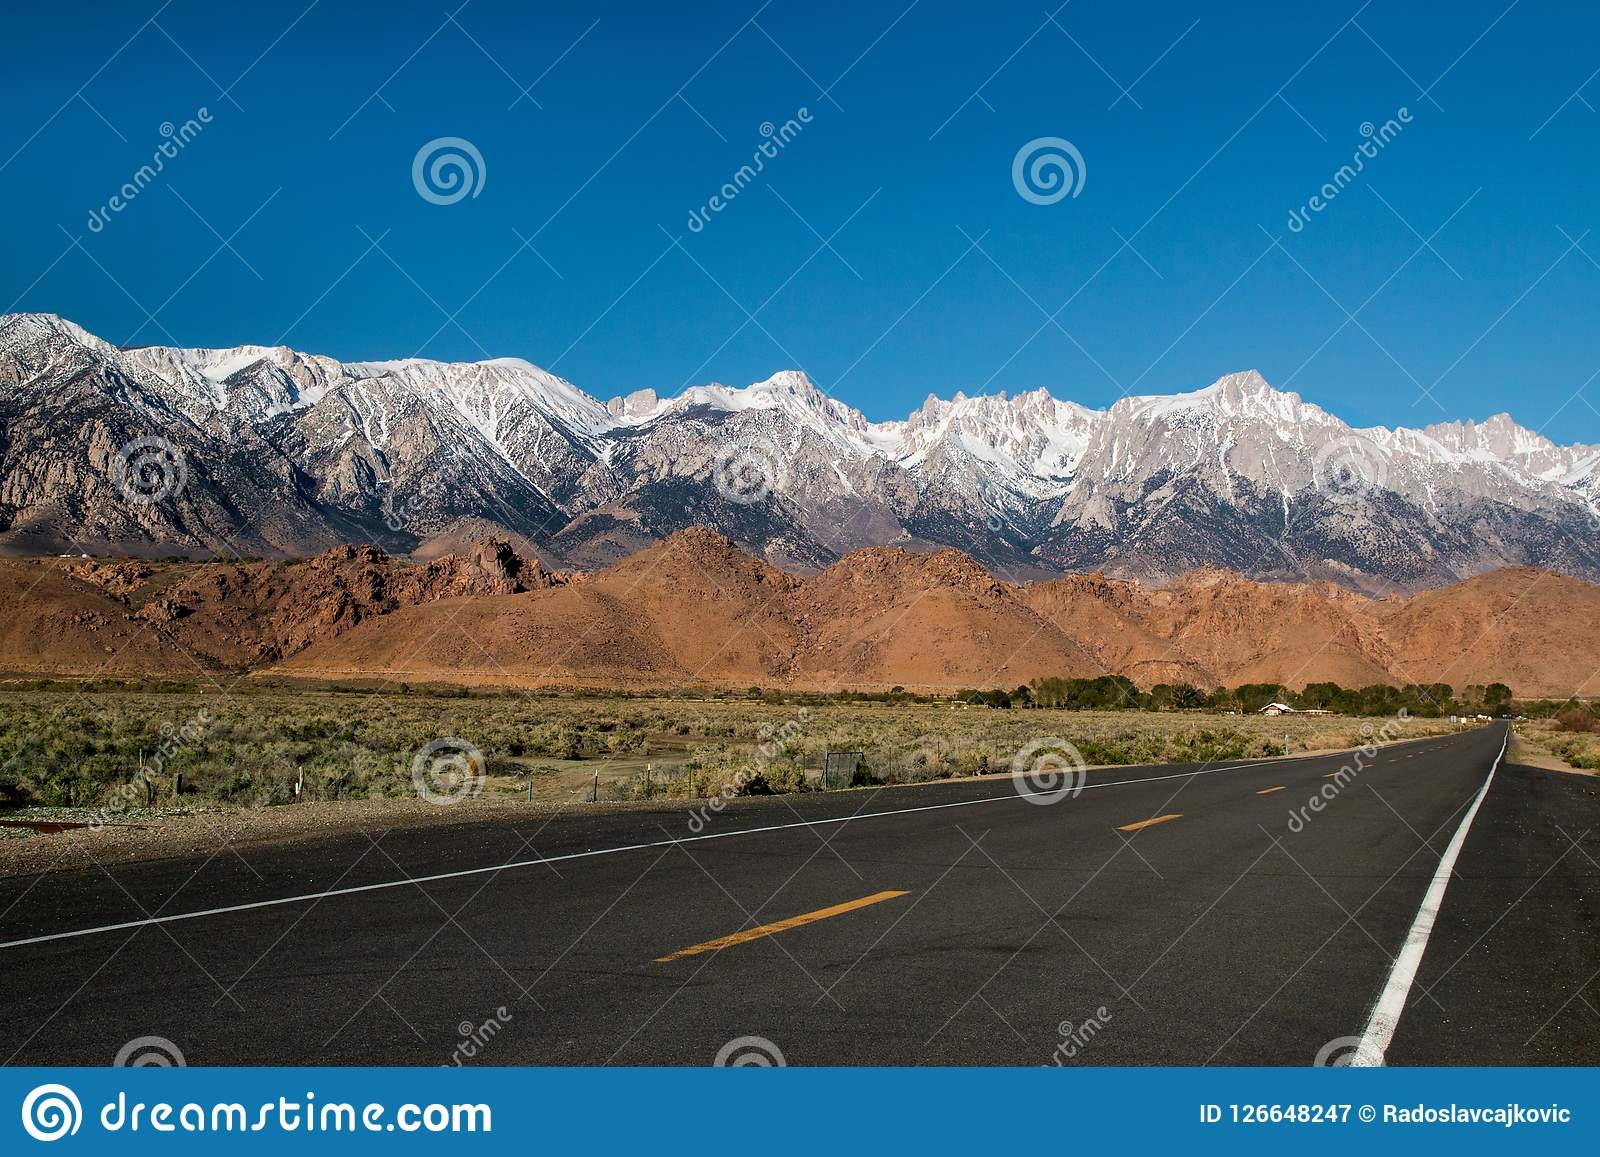 The Panamint Range high mountains shaping western wall of Death Valley desert, highway road trip scenery view in California